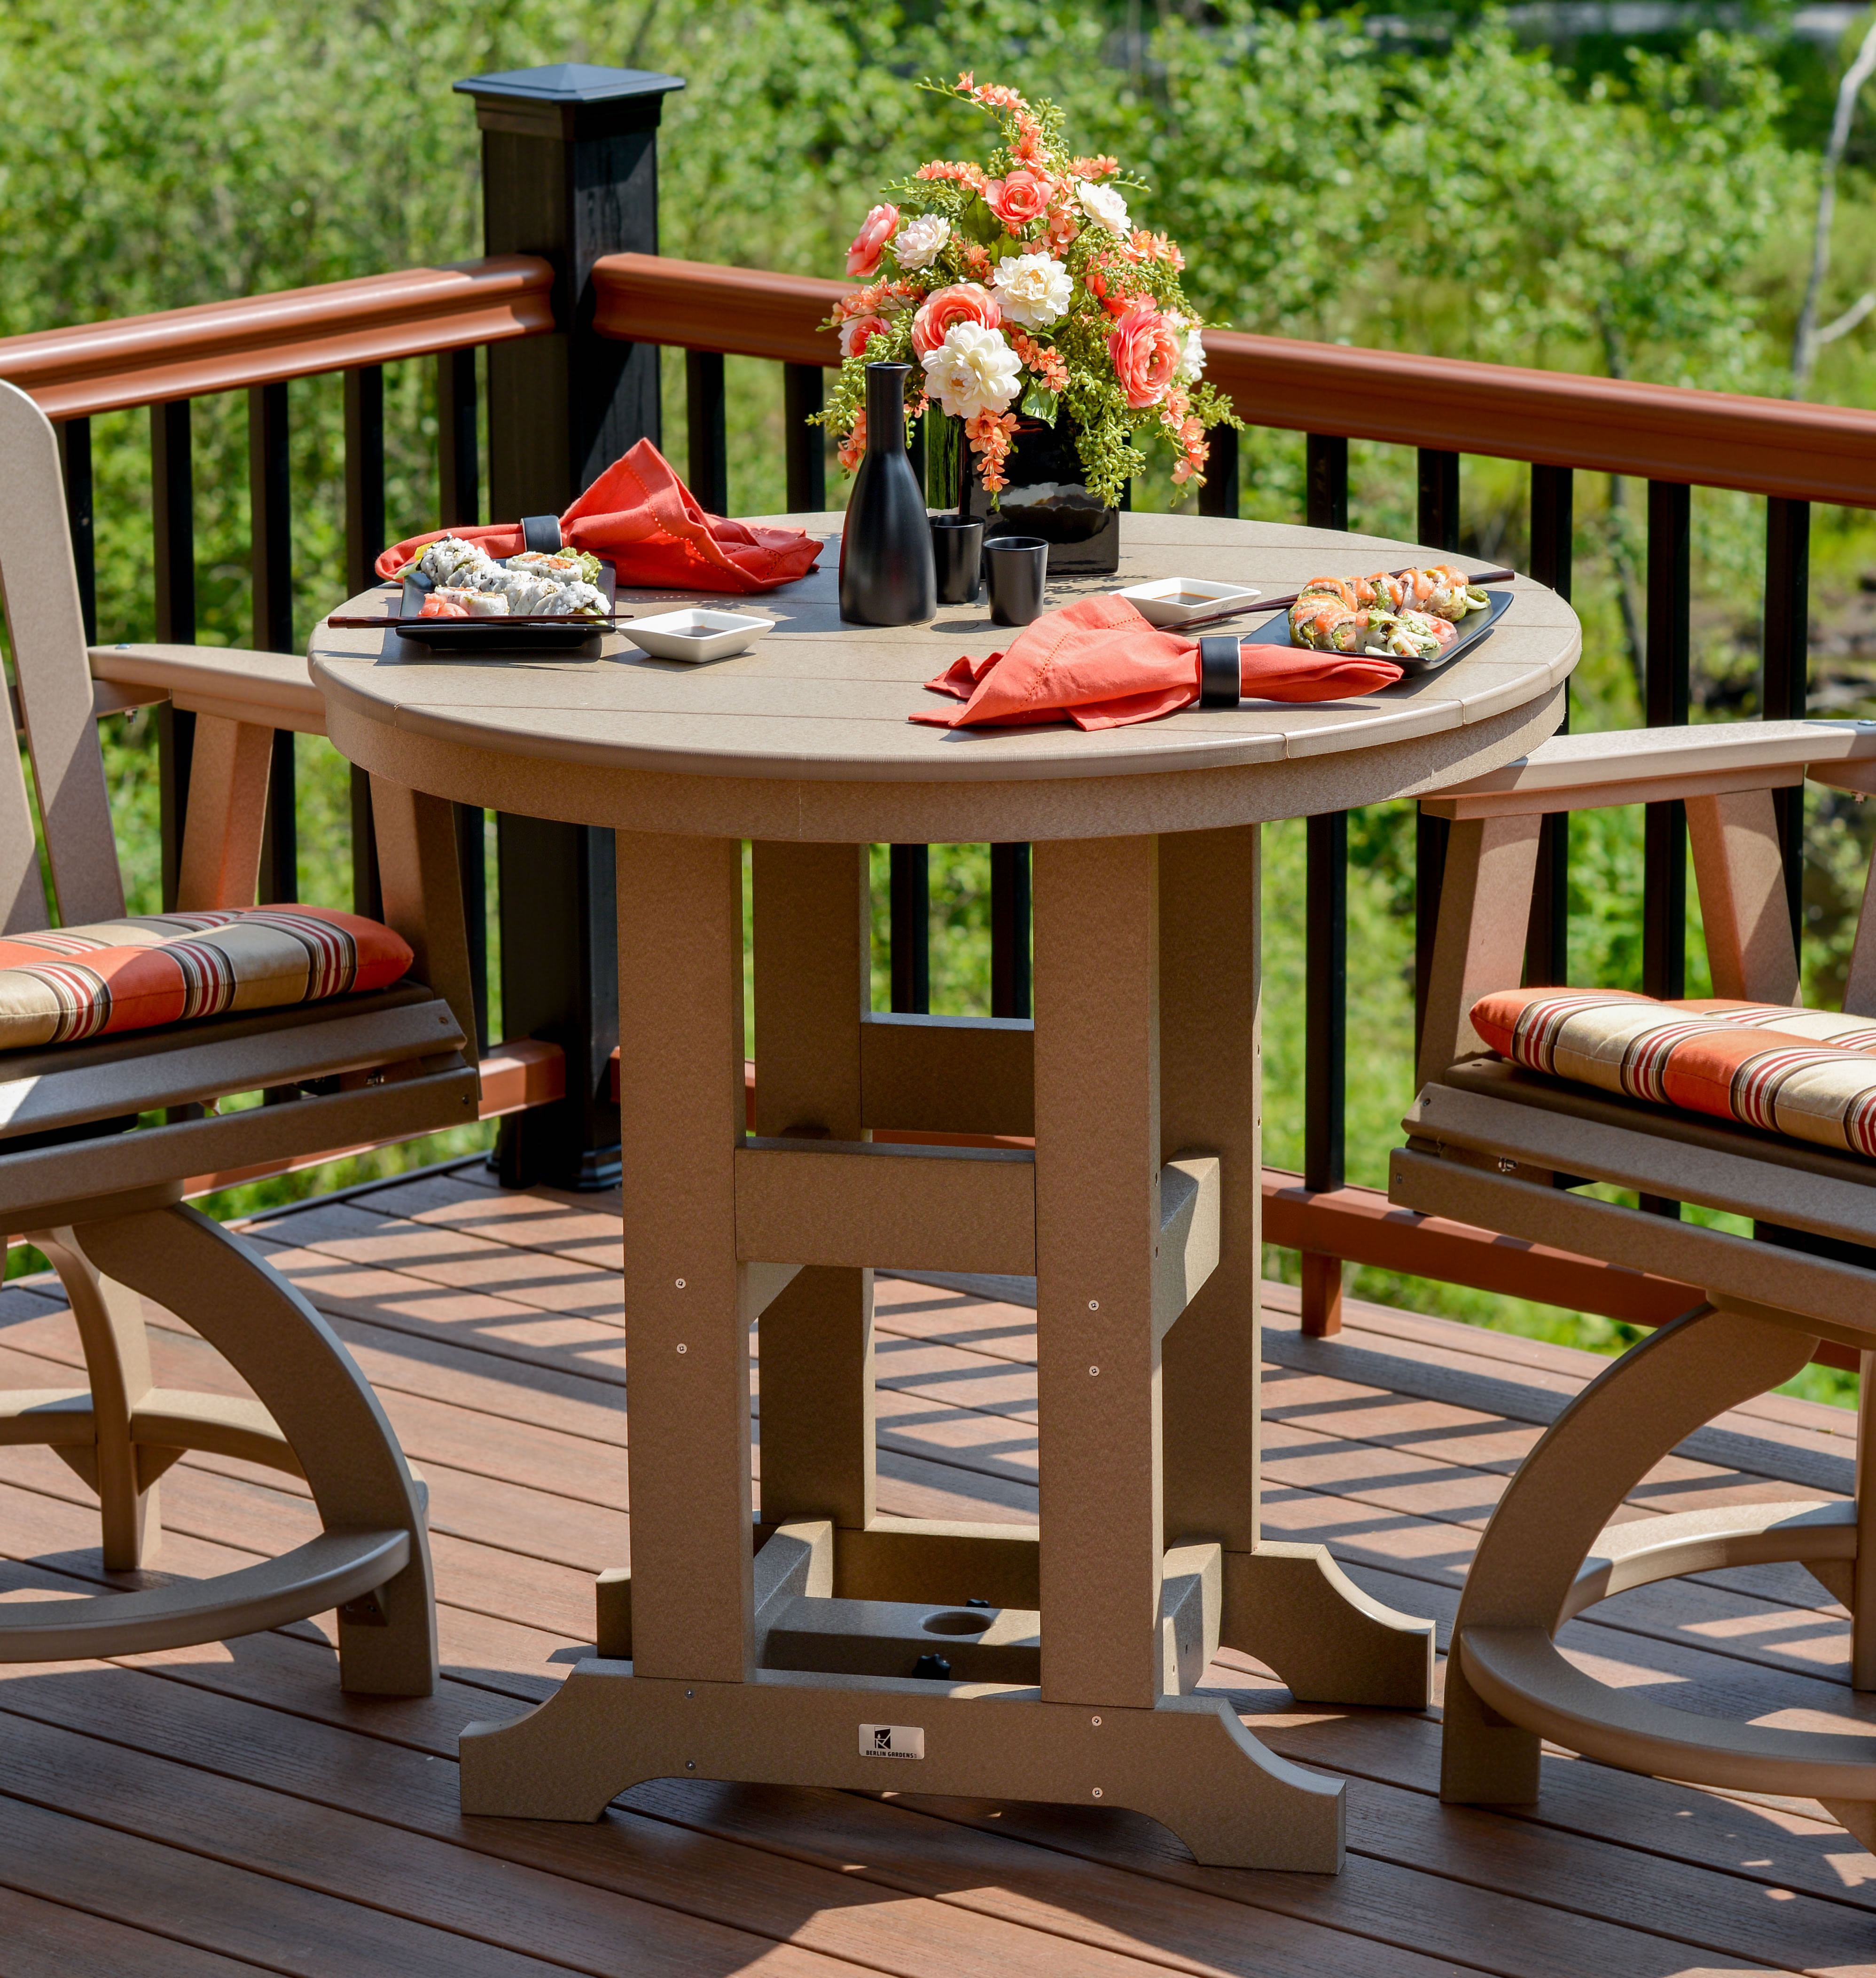 Garden Classic 38 in Round Table - Dining, Counter or Bar Height ...